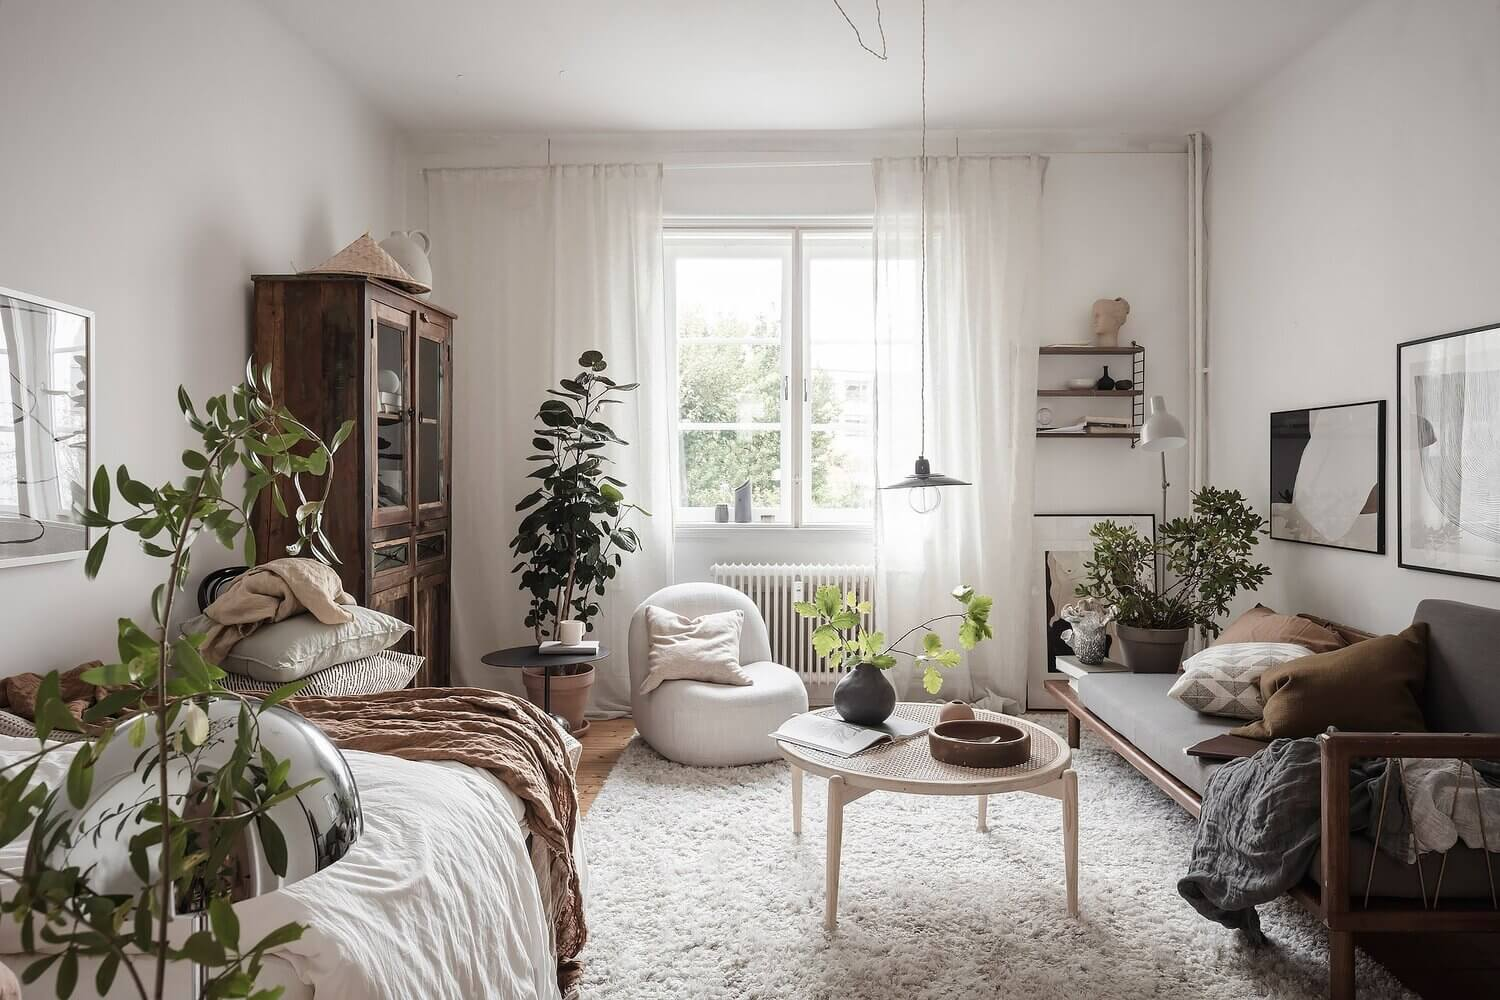 A Scandinavian Studio Apartment Decorated in Earthy Fall Colors